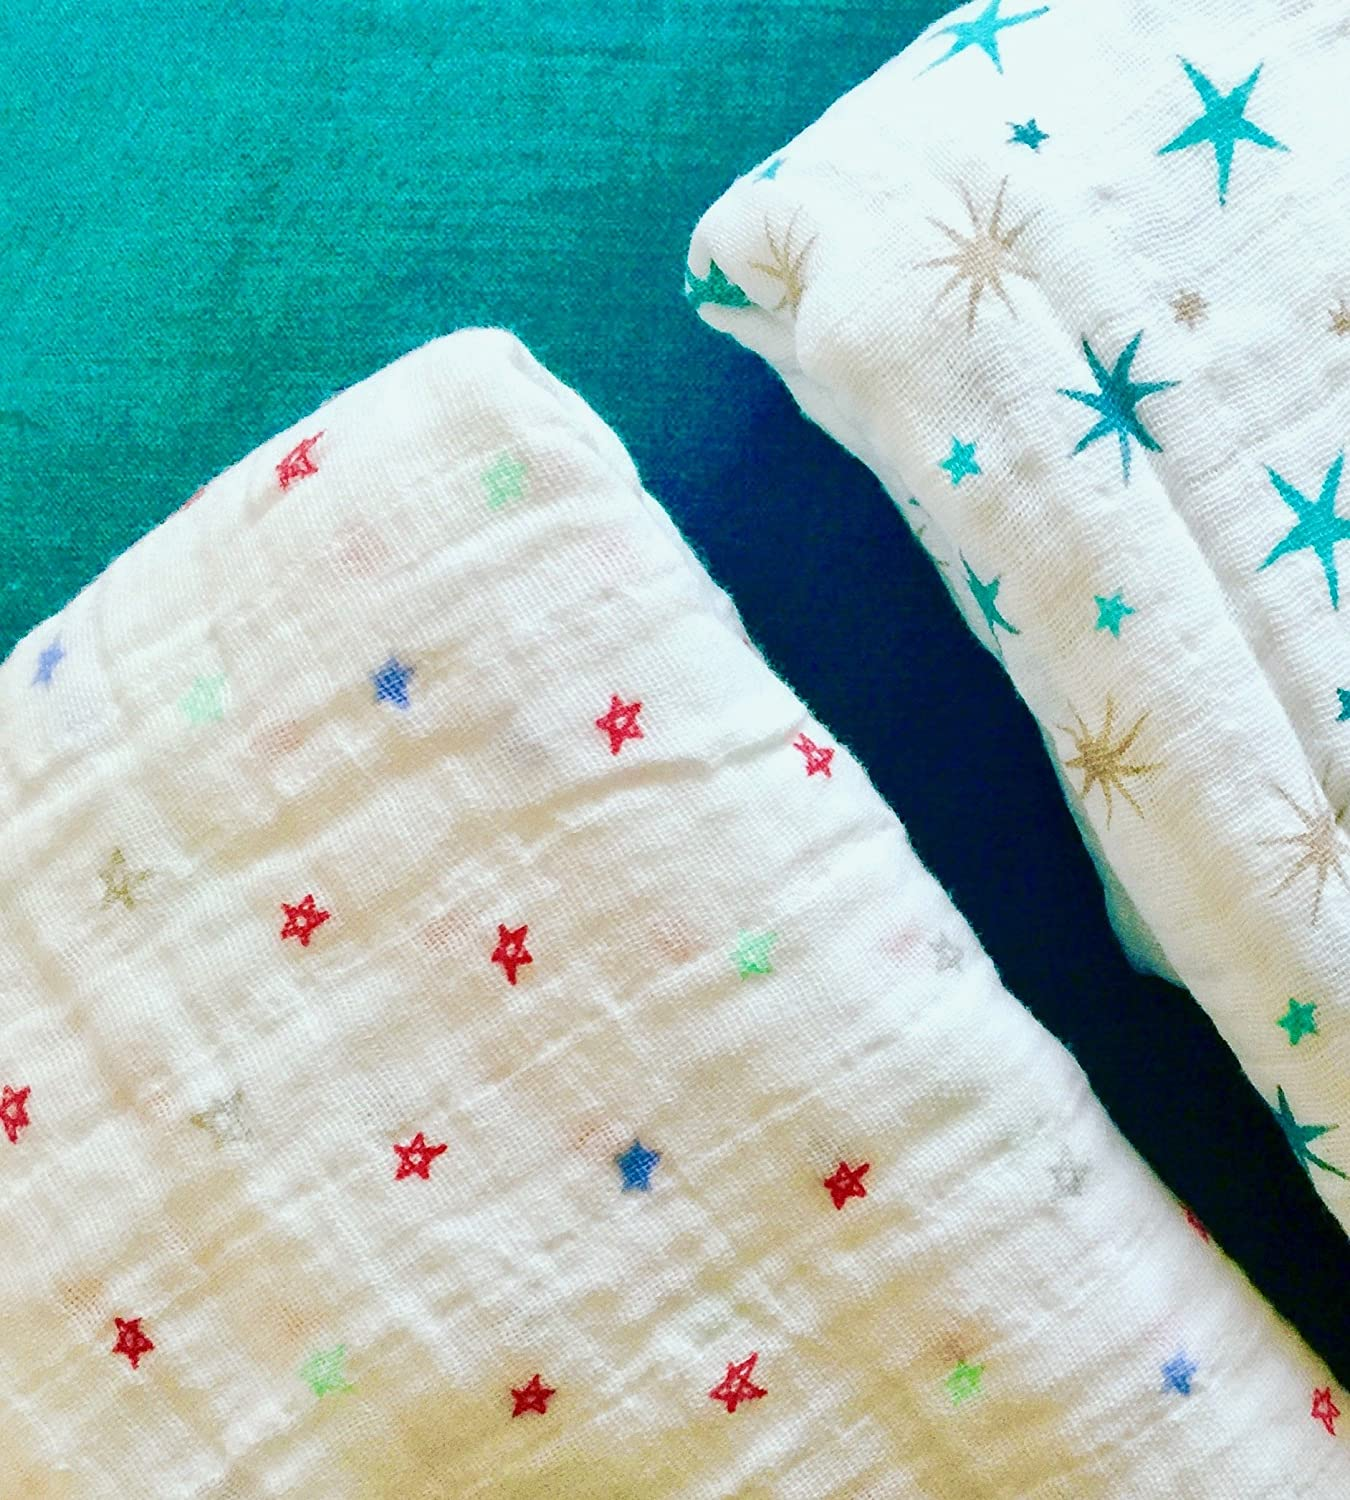 Baby Swaddling Blanket; Red Stars on White Cotton; XL Size Plus 2 Stroller Clips